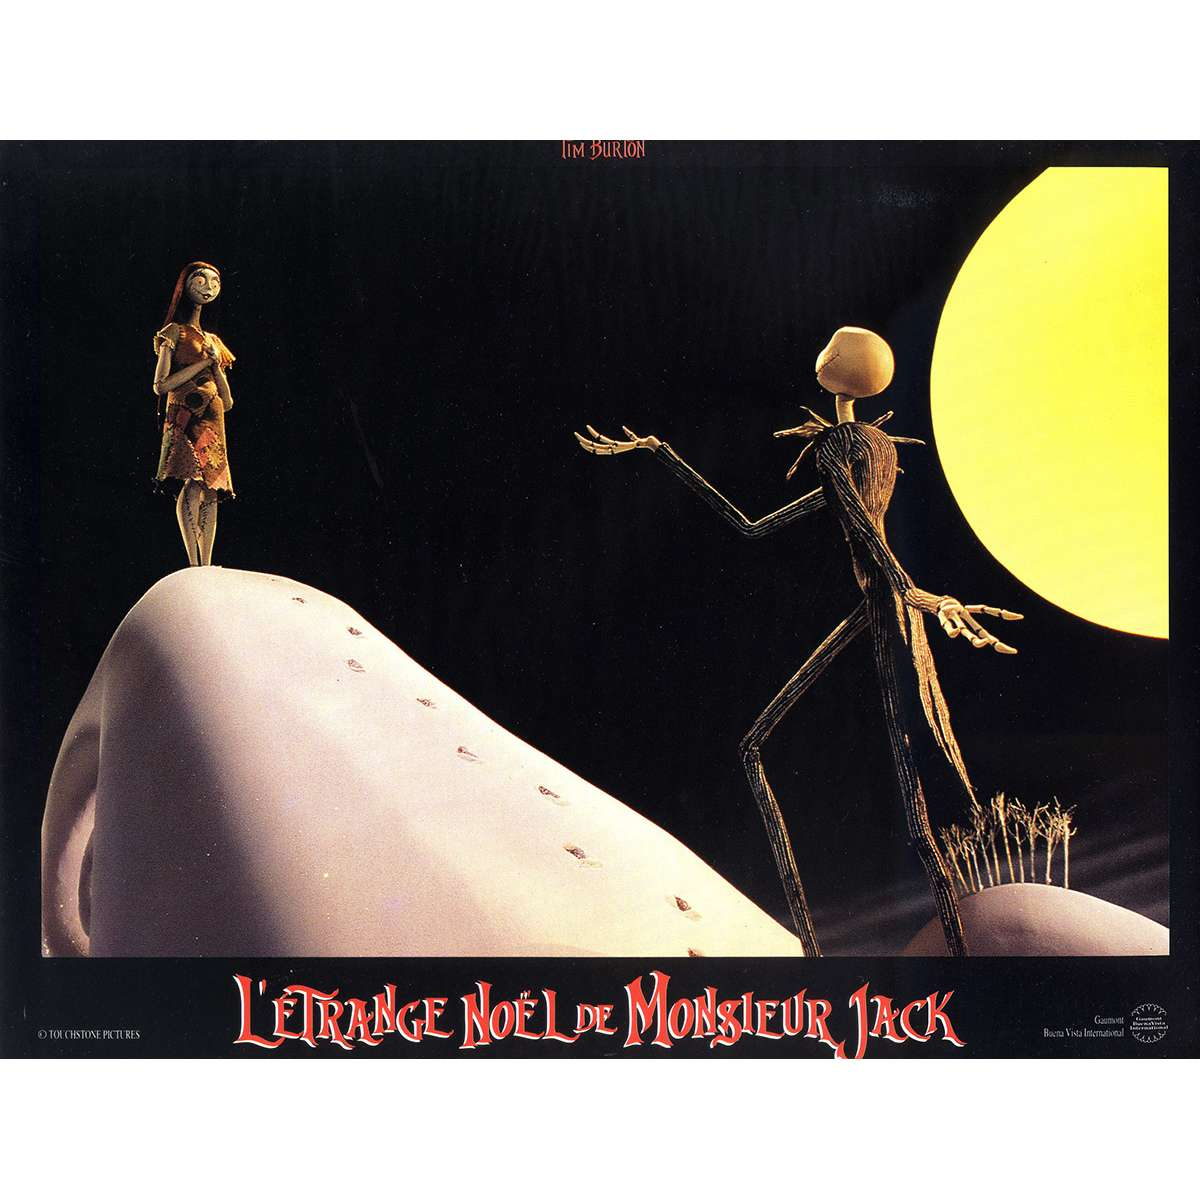 Nightmare Before Christmas In French.The Nightmare Before Christmas Original Lobby Card N06 9x12 In 1993 Tim Burton Danny Elfman